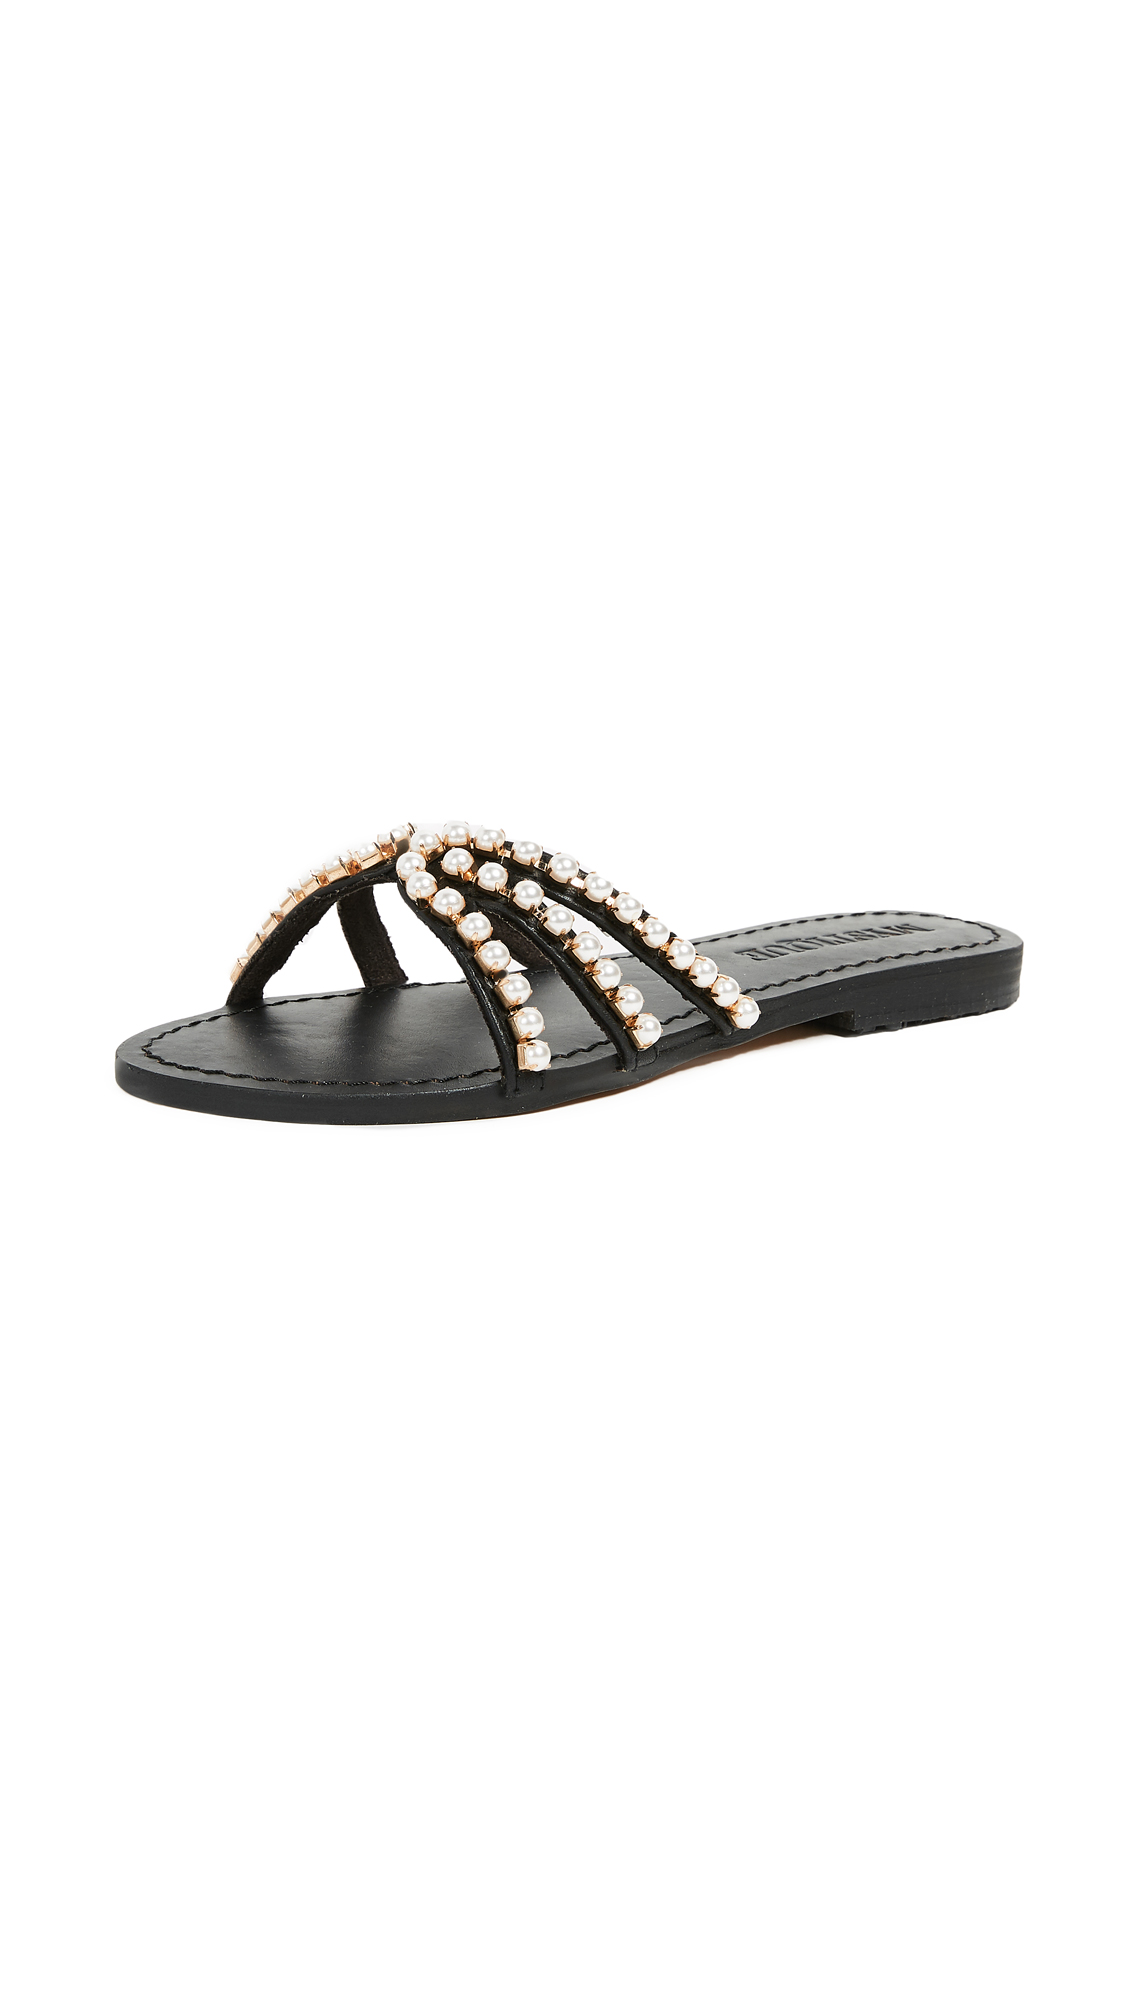 Mystique Imitation Pearl Sandals - Black